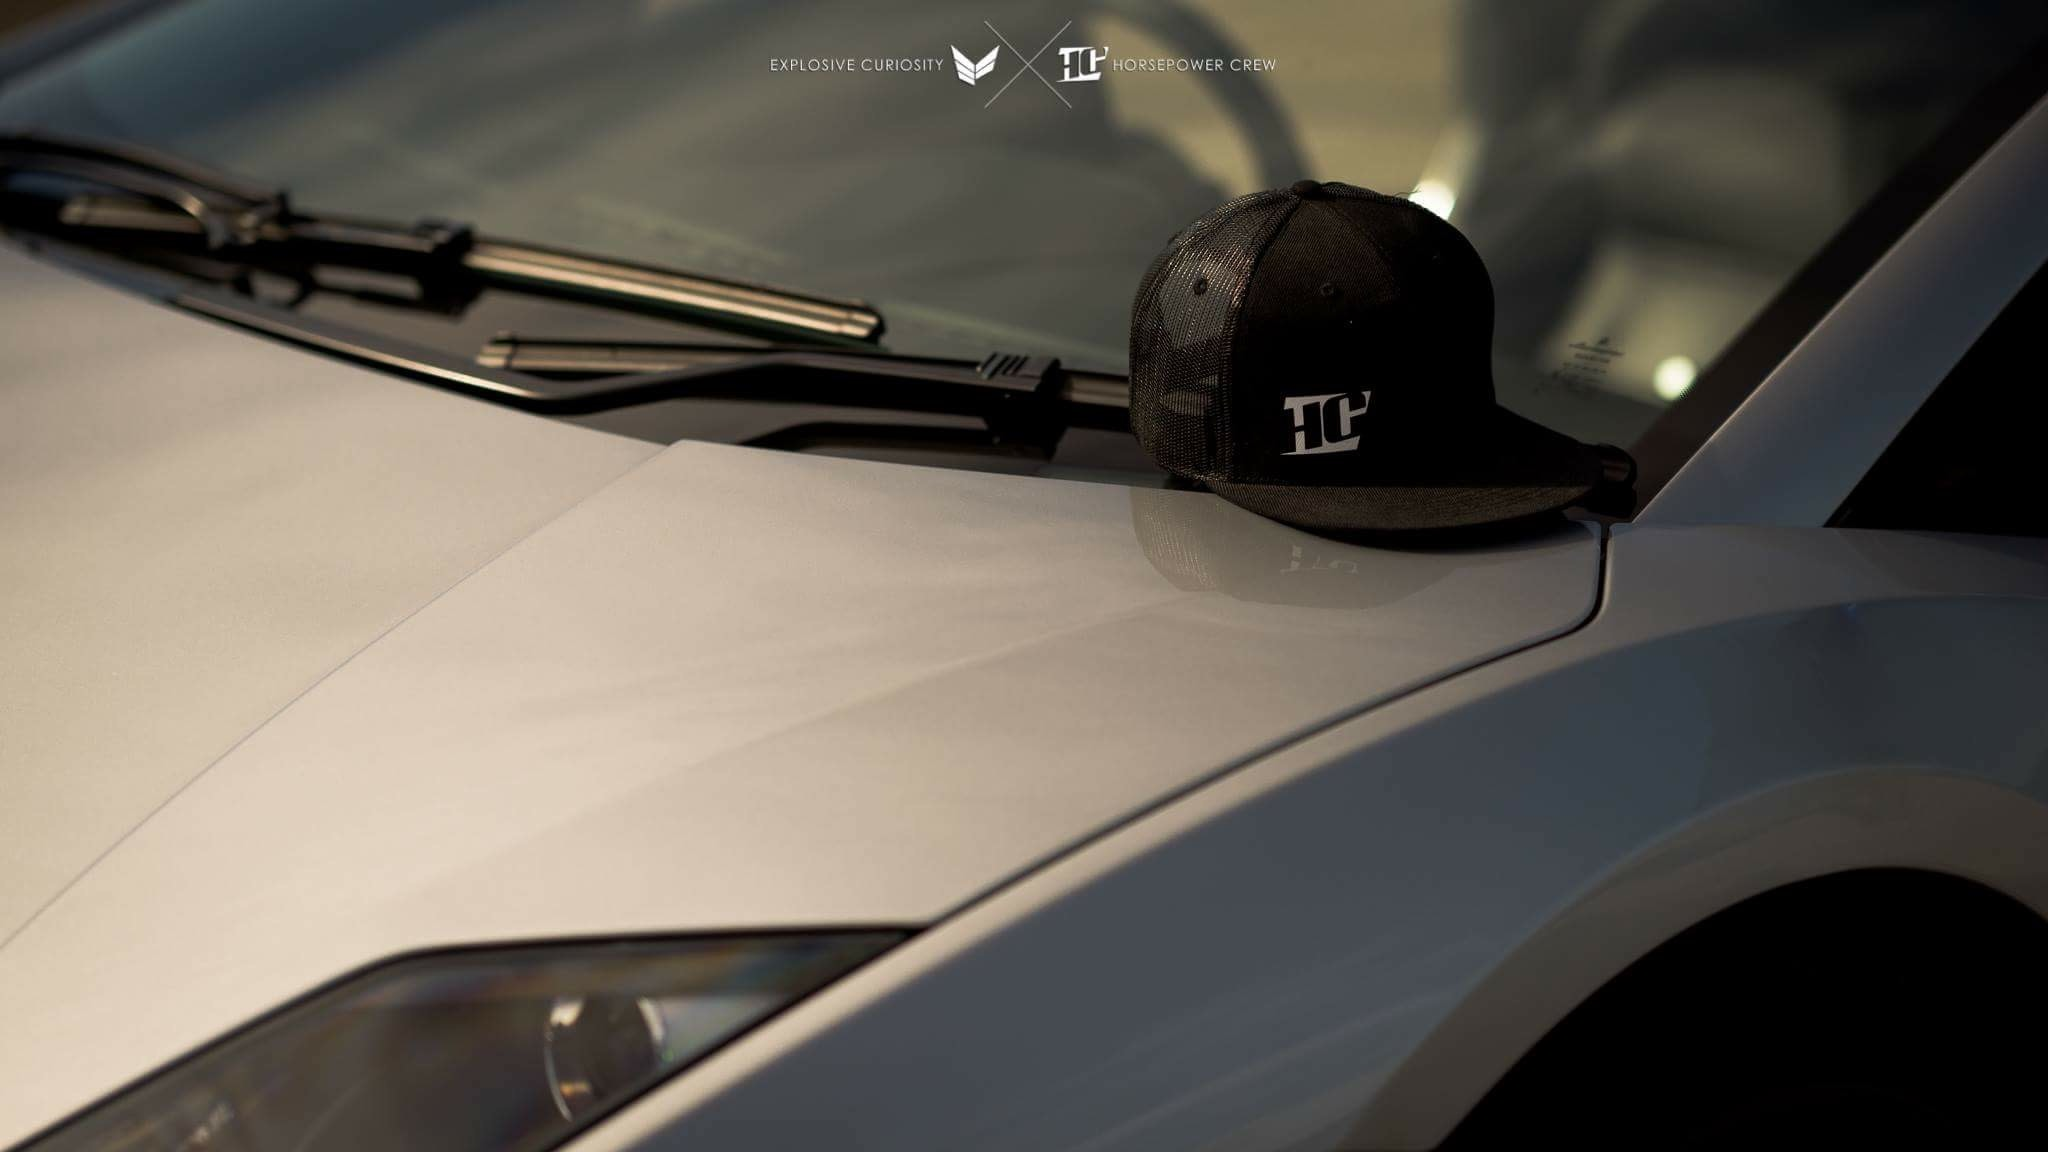 Hat-black-with-white-HC-on-lambo-angle